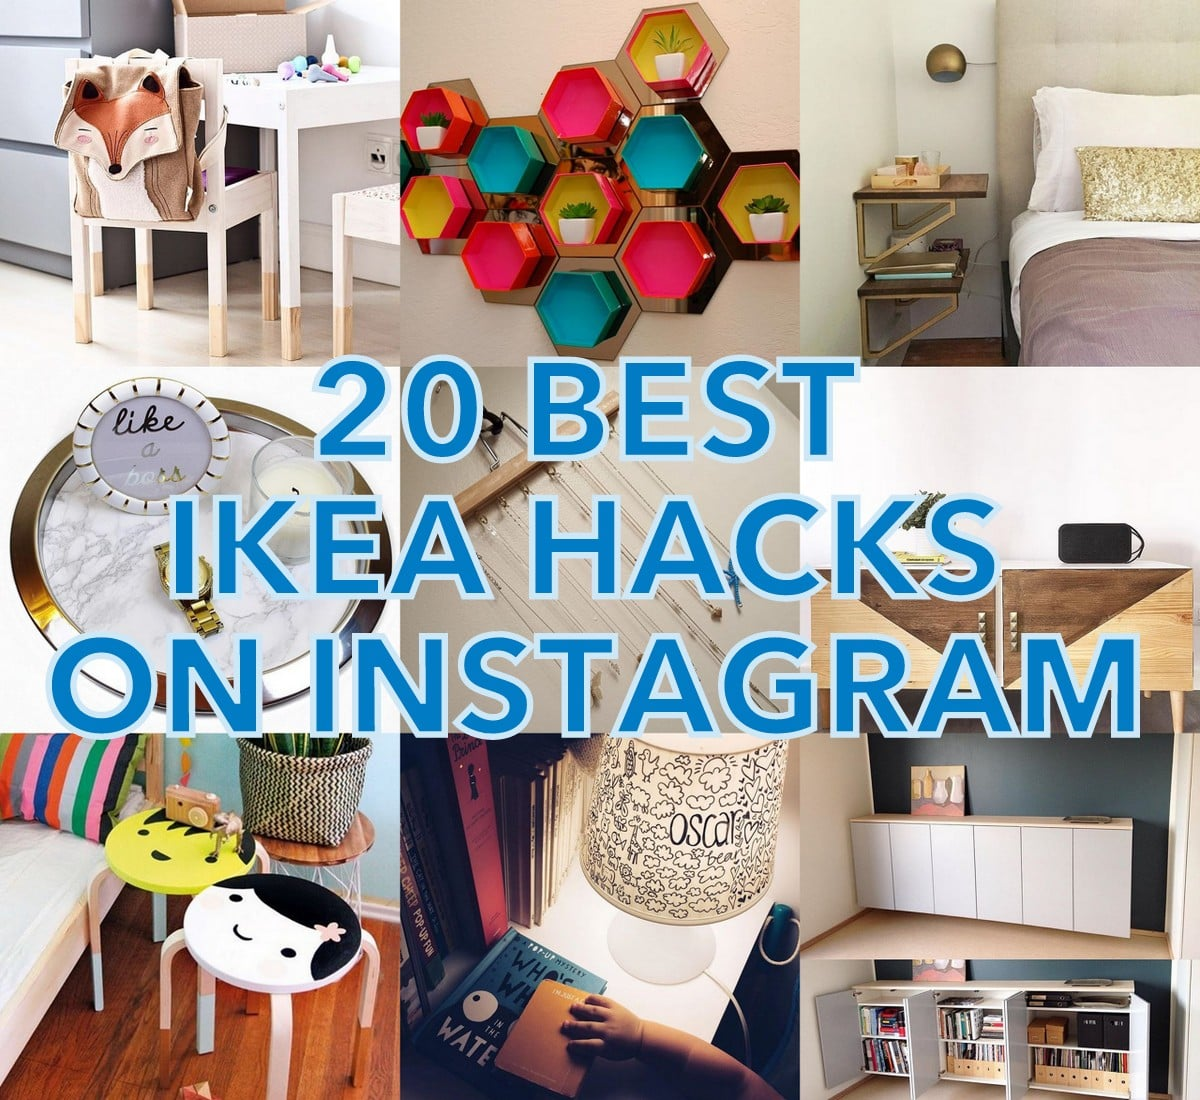 Ikea Hacks 20 Best Ikea Hacks On Instagram And I M An Instaaddict Ikea